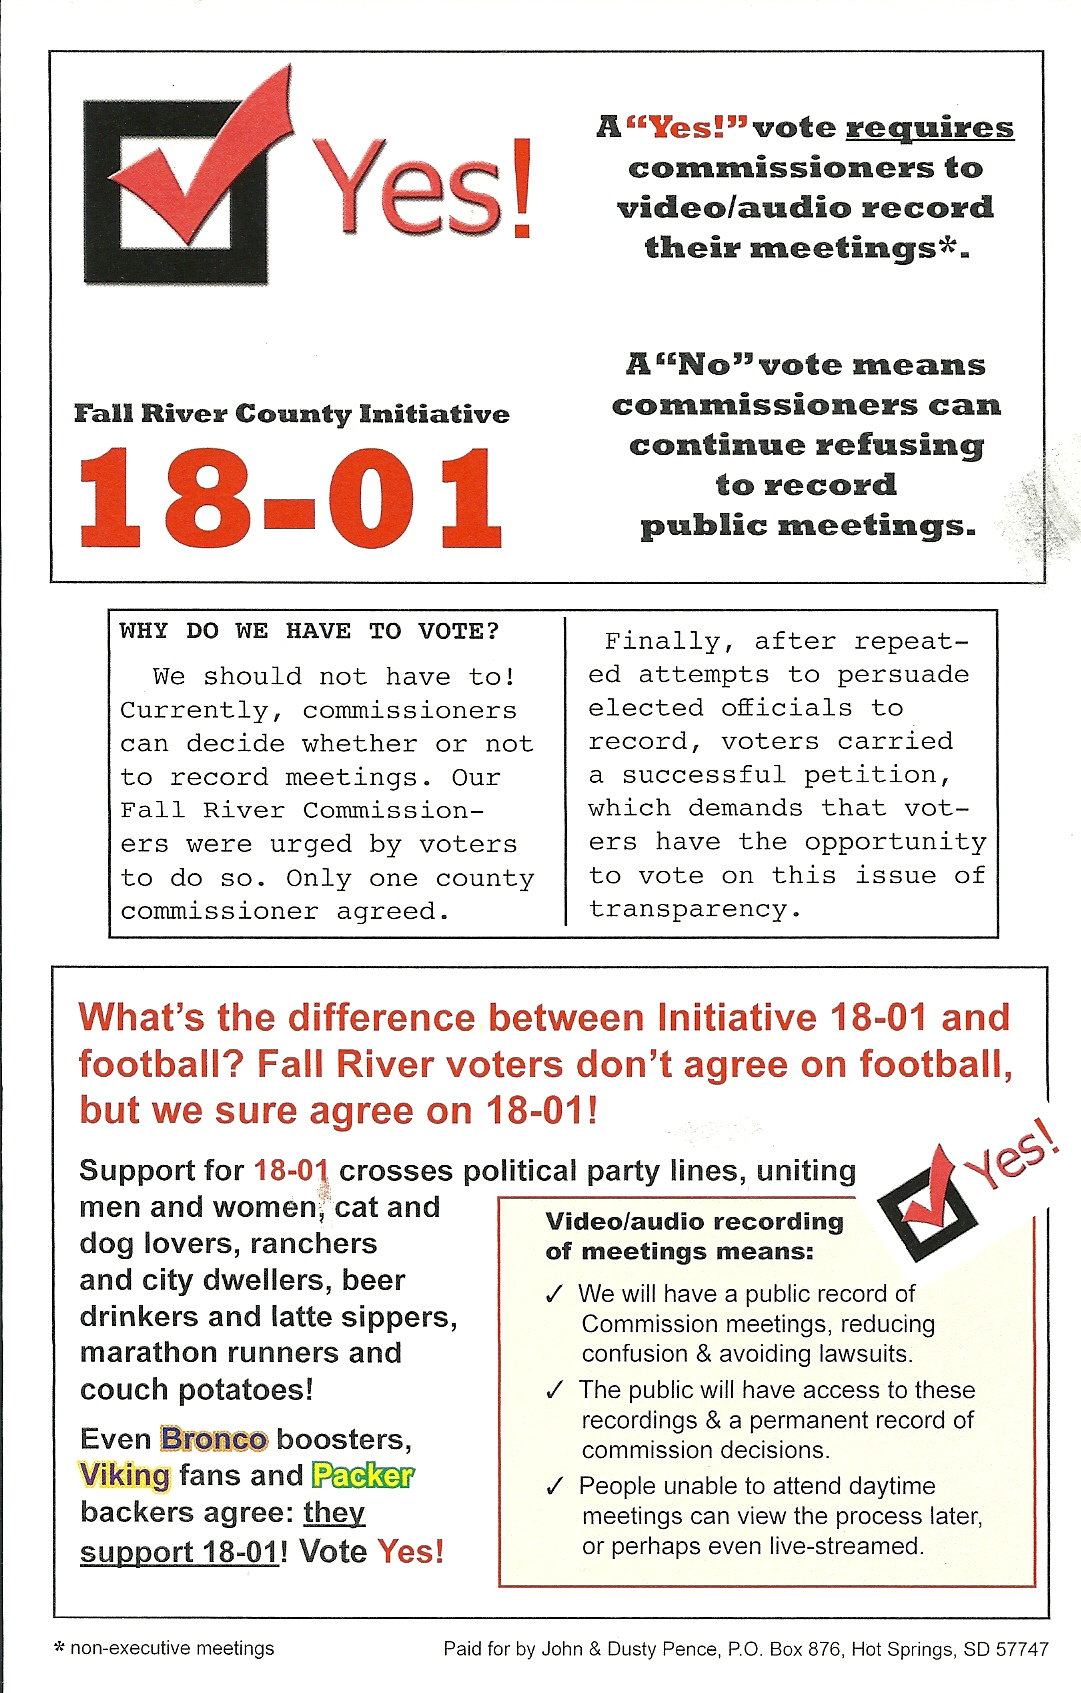 Fall River County Initiated Measure 18-01